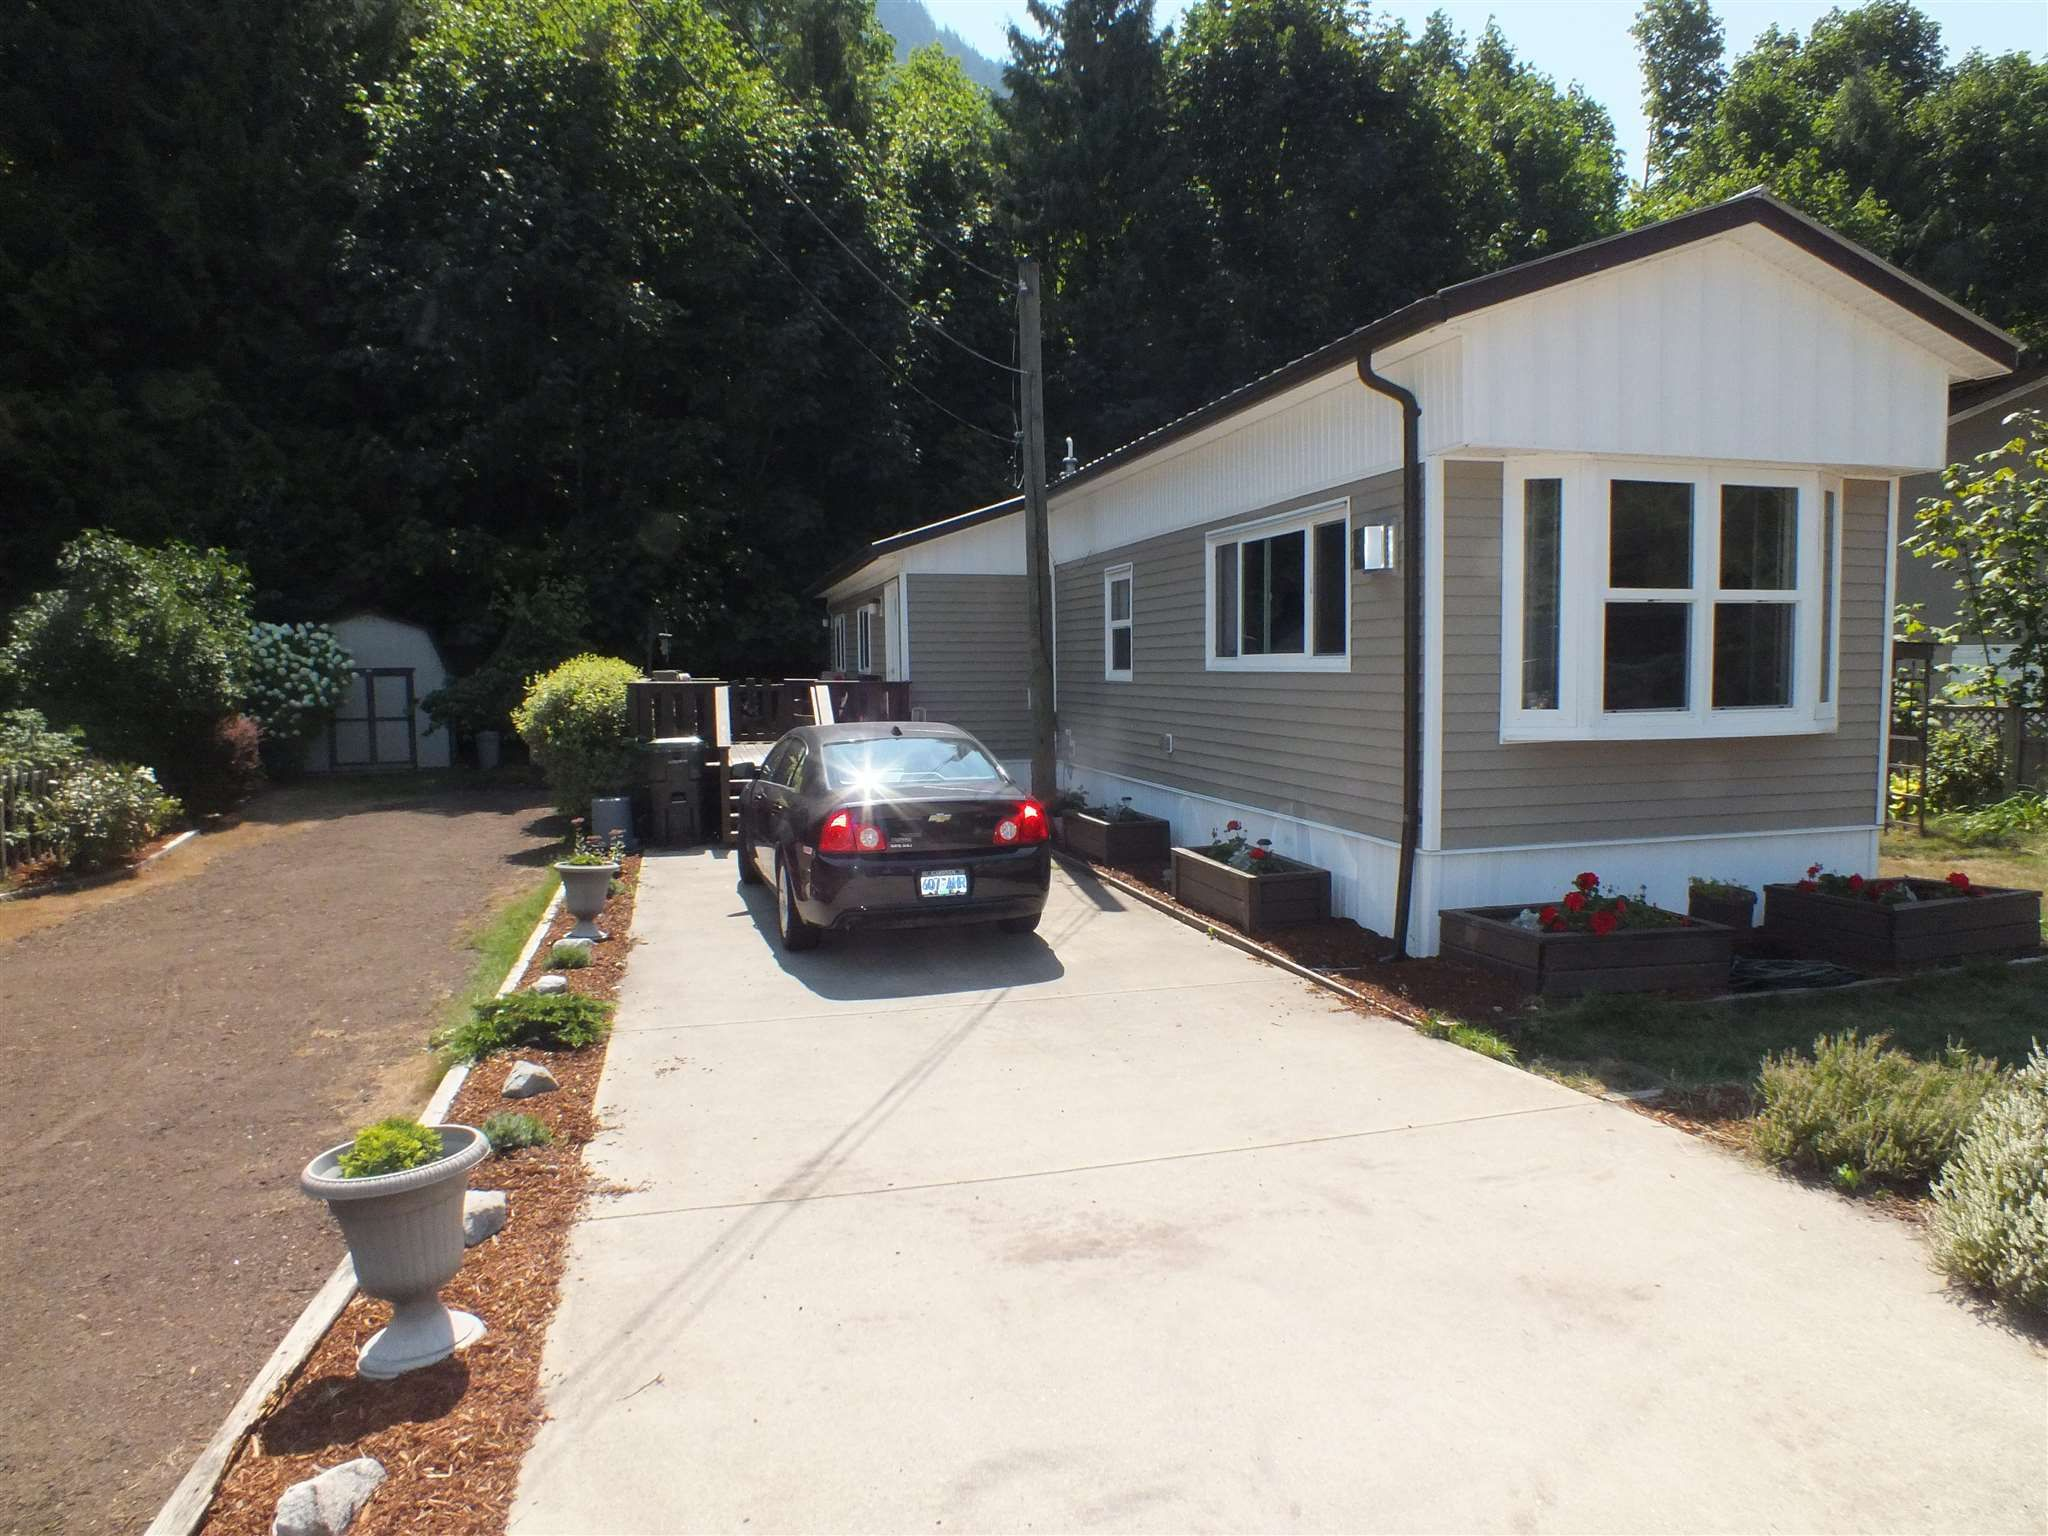 Main Photo: 1 63844 BAILEY Crescent in Hope: Hope Silver Creek Manufactured Home for sale : MLS®# R2607232